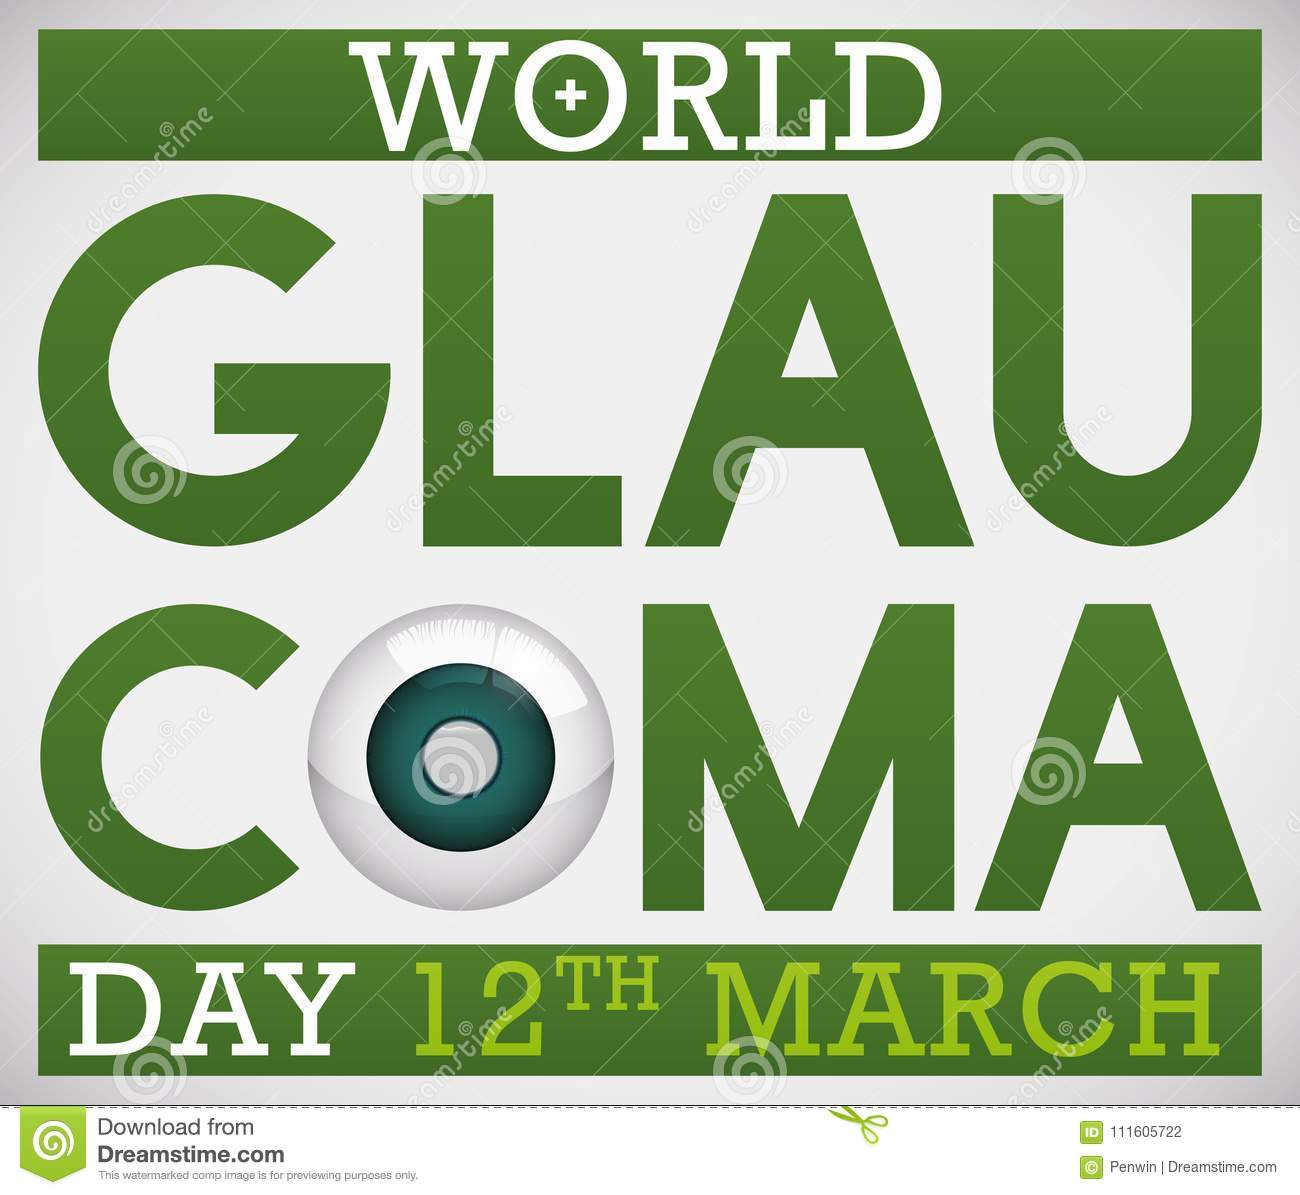 Design for World Glaucoma Day Promoting Awareness with Sick Eye, Vector Illustration